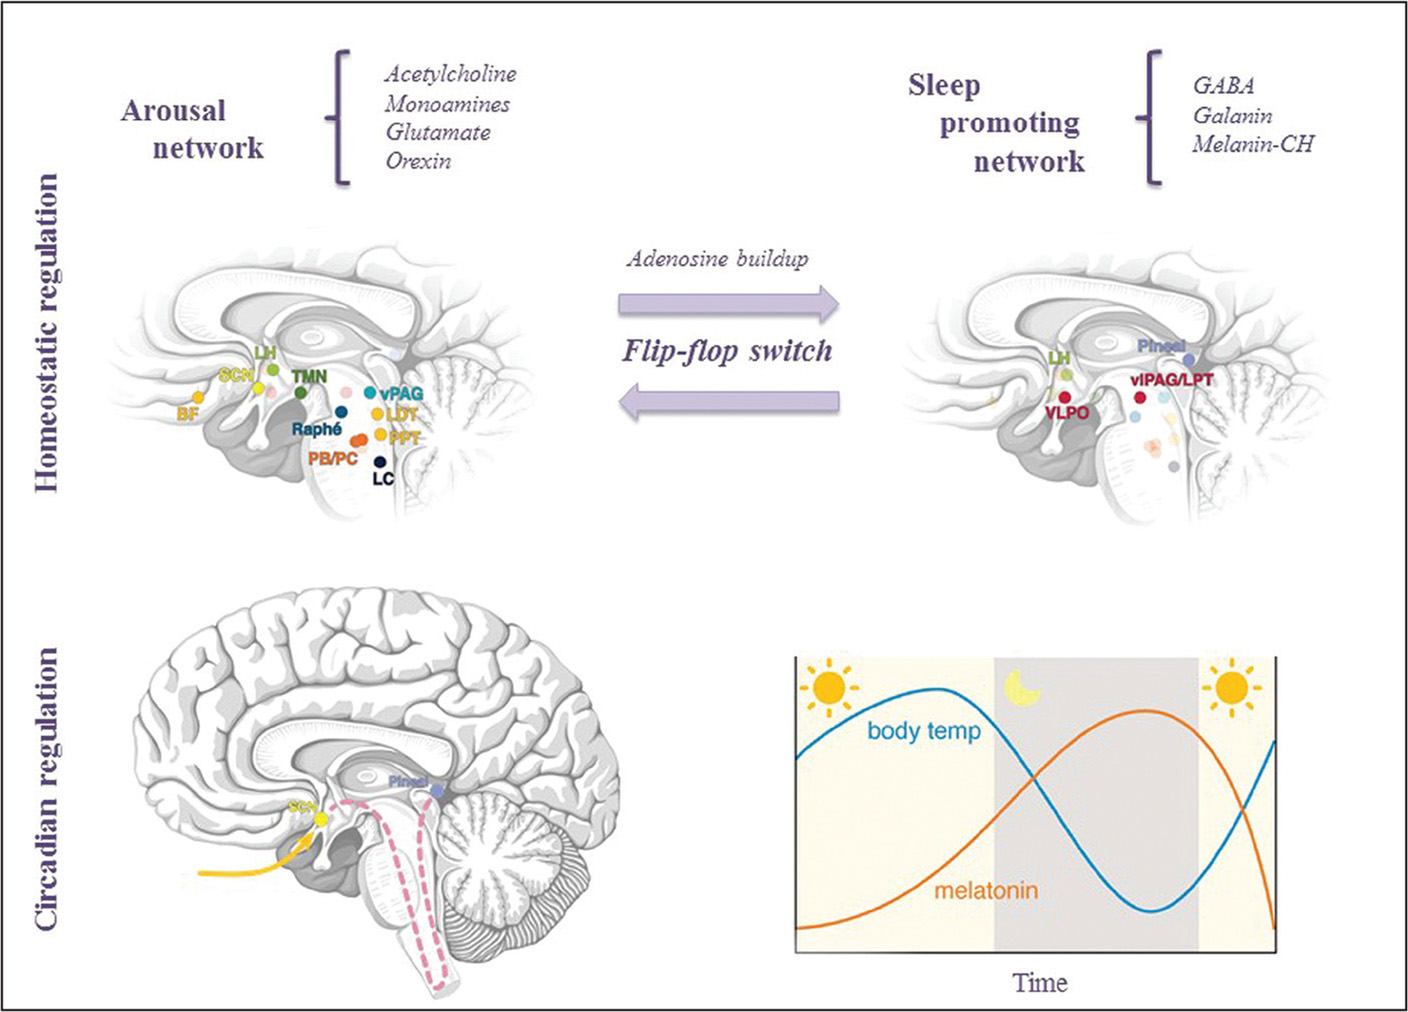 Sleep-wake cycle regulation: homeostatic and circadian processes. Brain rhythms and, by extension, sleep-wake modulation, are coordinated through brainstem and hypothalamic nuclear activity. This regulation can be conceptualized in two processes: a homeostatic (top) and a circadian (bottom). Color coding for most significant neurotransmitters and hormones produced by noted areas: red, GABA; light green, orexin; dark green, histamine; purple, melatonin; light yellow, vasoactive intestinal polypeptide and arginine vasopressin; dark yellow, acetylcholine; light orange, melanin concentrating hormone; dark orange, glutamate; light blue, dopamine; blue, serotonin; dark blue, noradrenaline. BF, basal forebrain; GABA, gamma-aminobutyric acid; LC, locus coeruleus; LDT, laterodorsal tegmental; LH, lateral hypothalamus; PPT, pedunculopontine tegmental; SLD/PB/PC, sublaterodorsal/medial parabrachial/precoeruleus region; SCN, suprachiasmatic nucleus; TMN, tuberomammillary nucleus; vPAG, ventral periaqueductal gray; vlPAG/LPT, ventrolateral periaqueductal gray/lateral pontine tegmental; VLPO, ventrolateral preoptic.